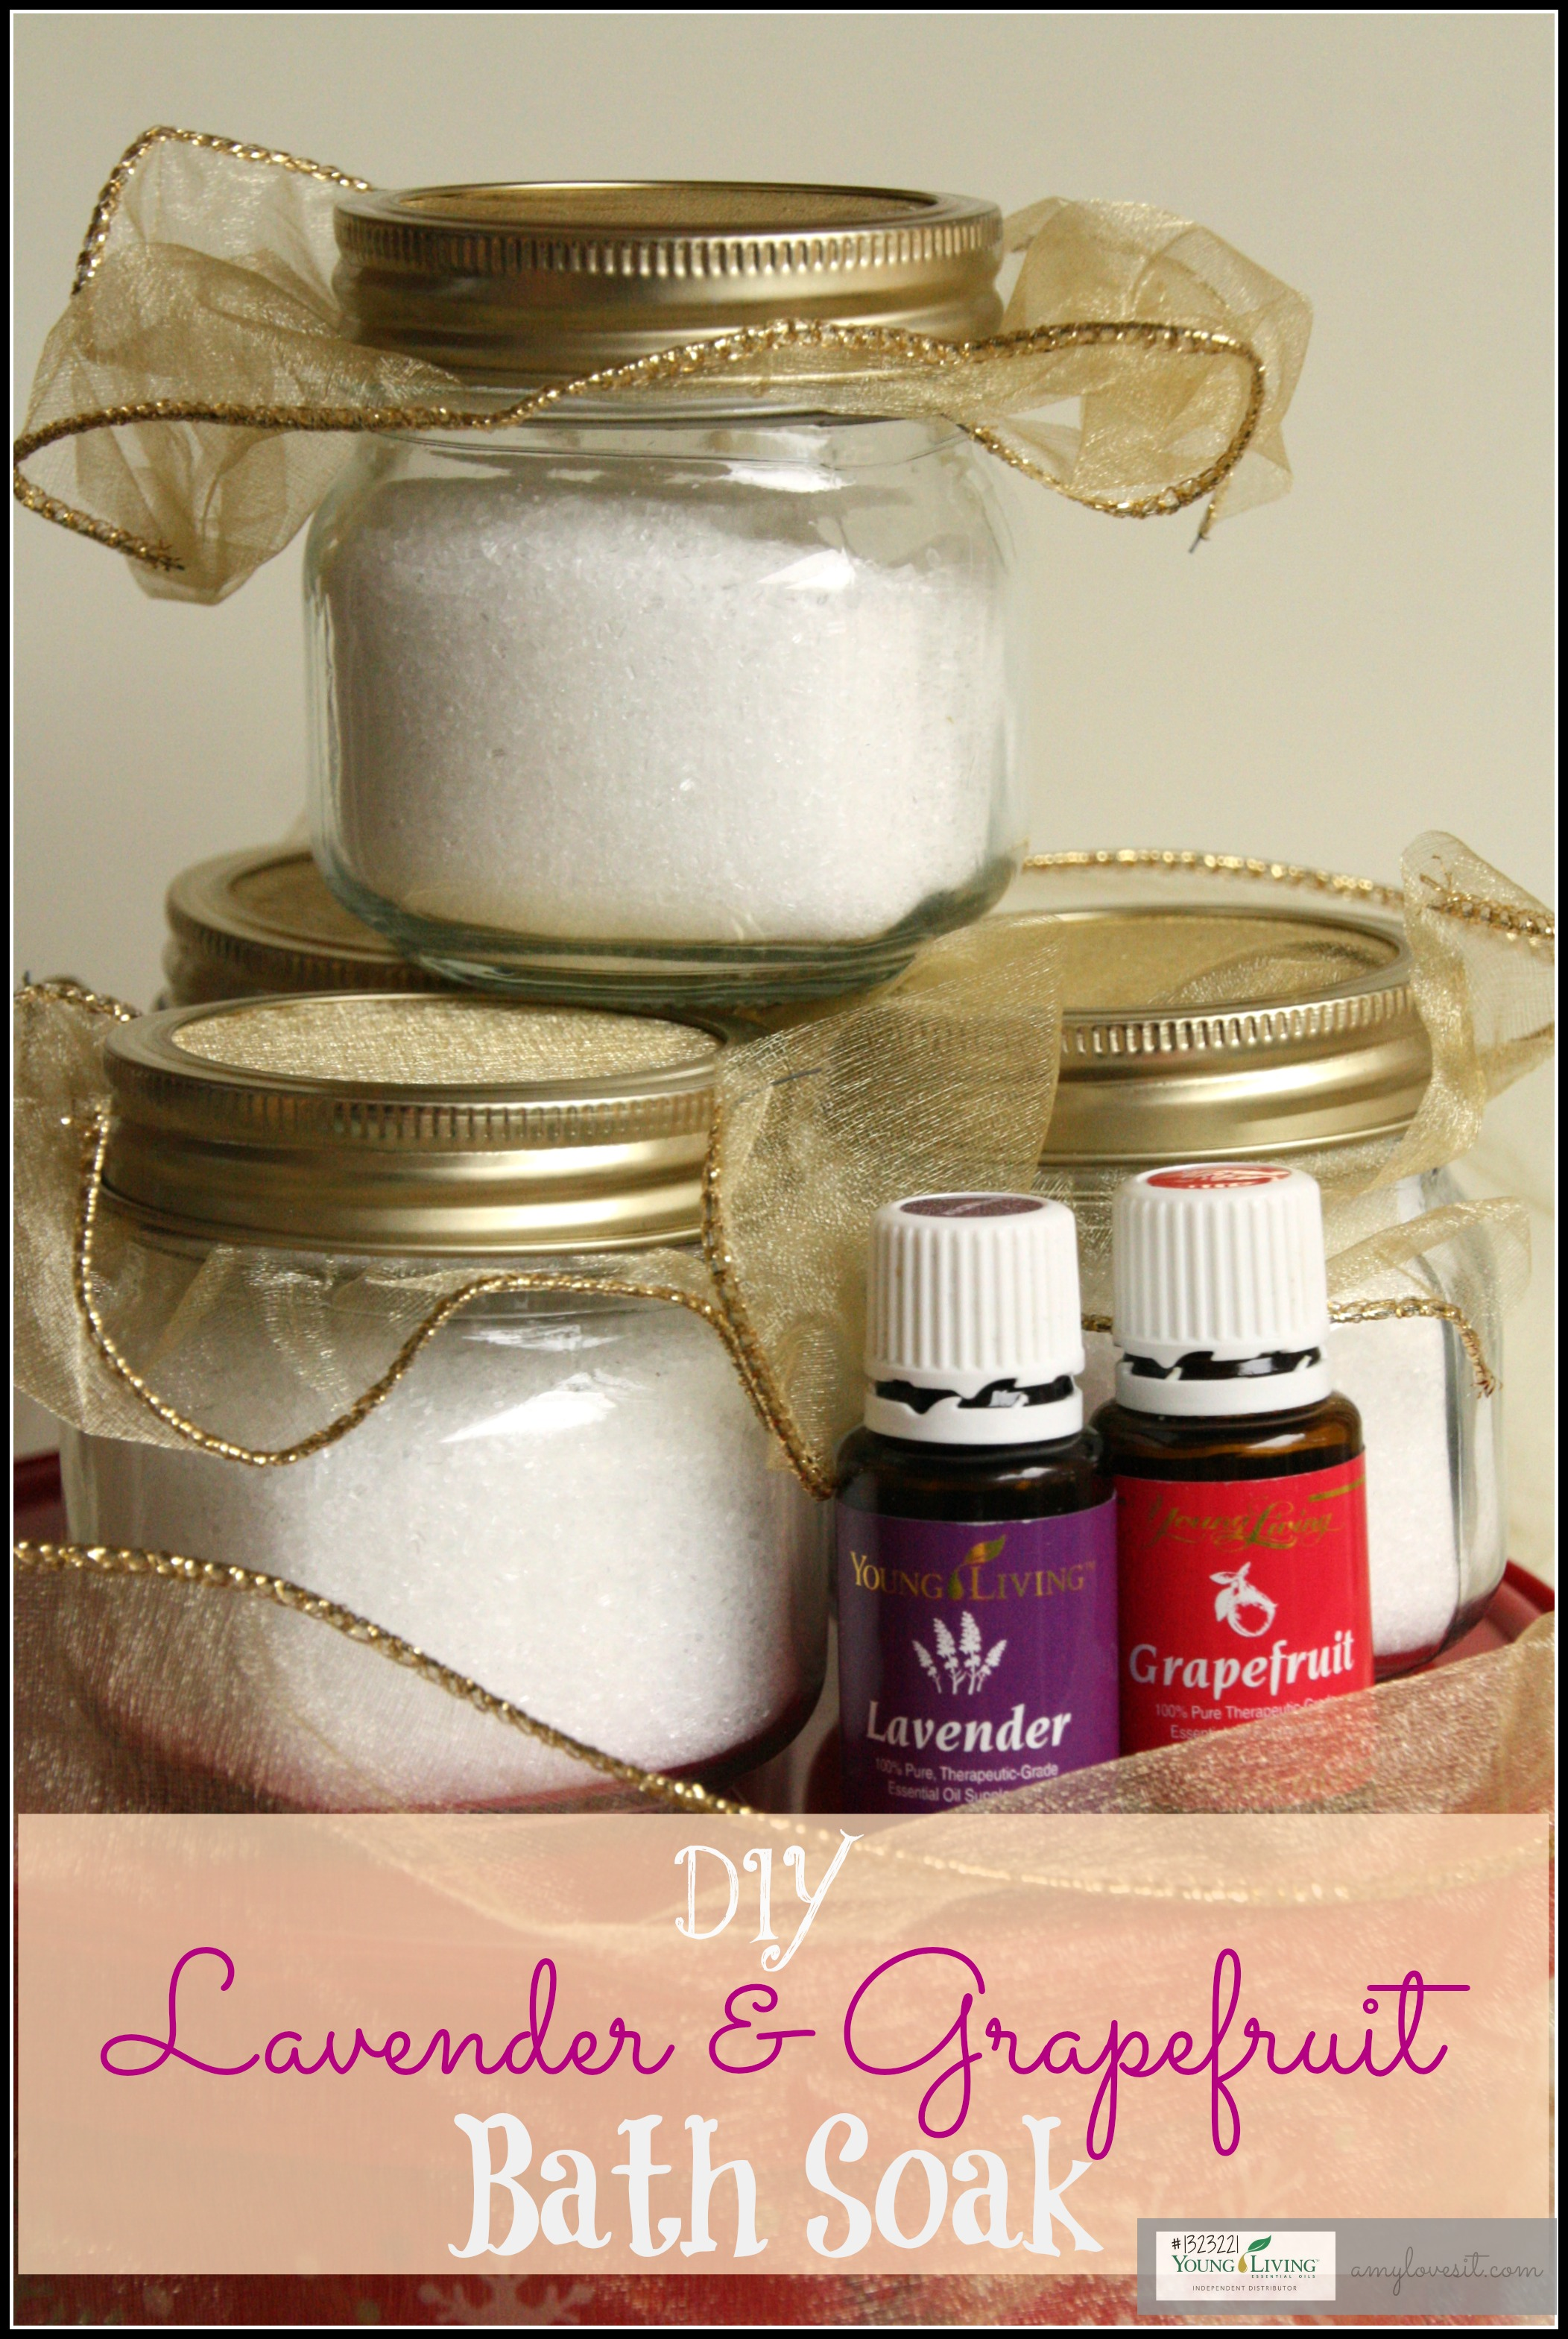 Lavender and Grapefruit Bath Soak